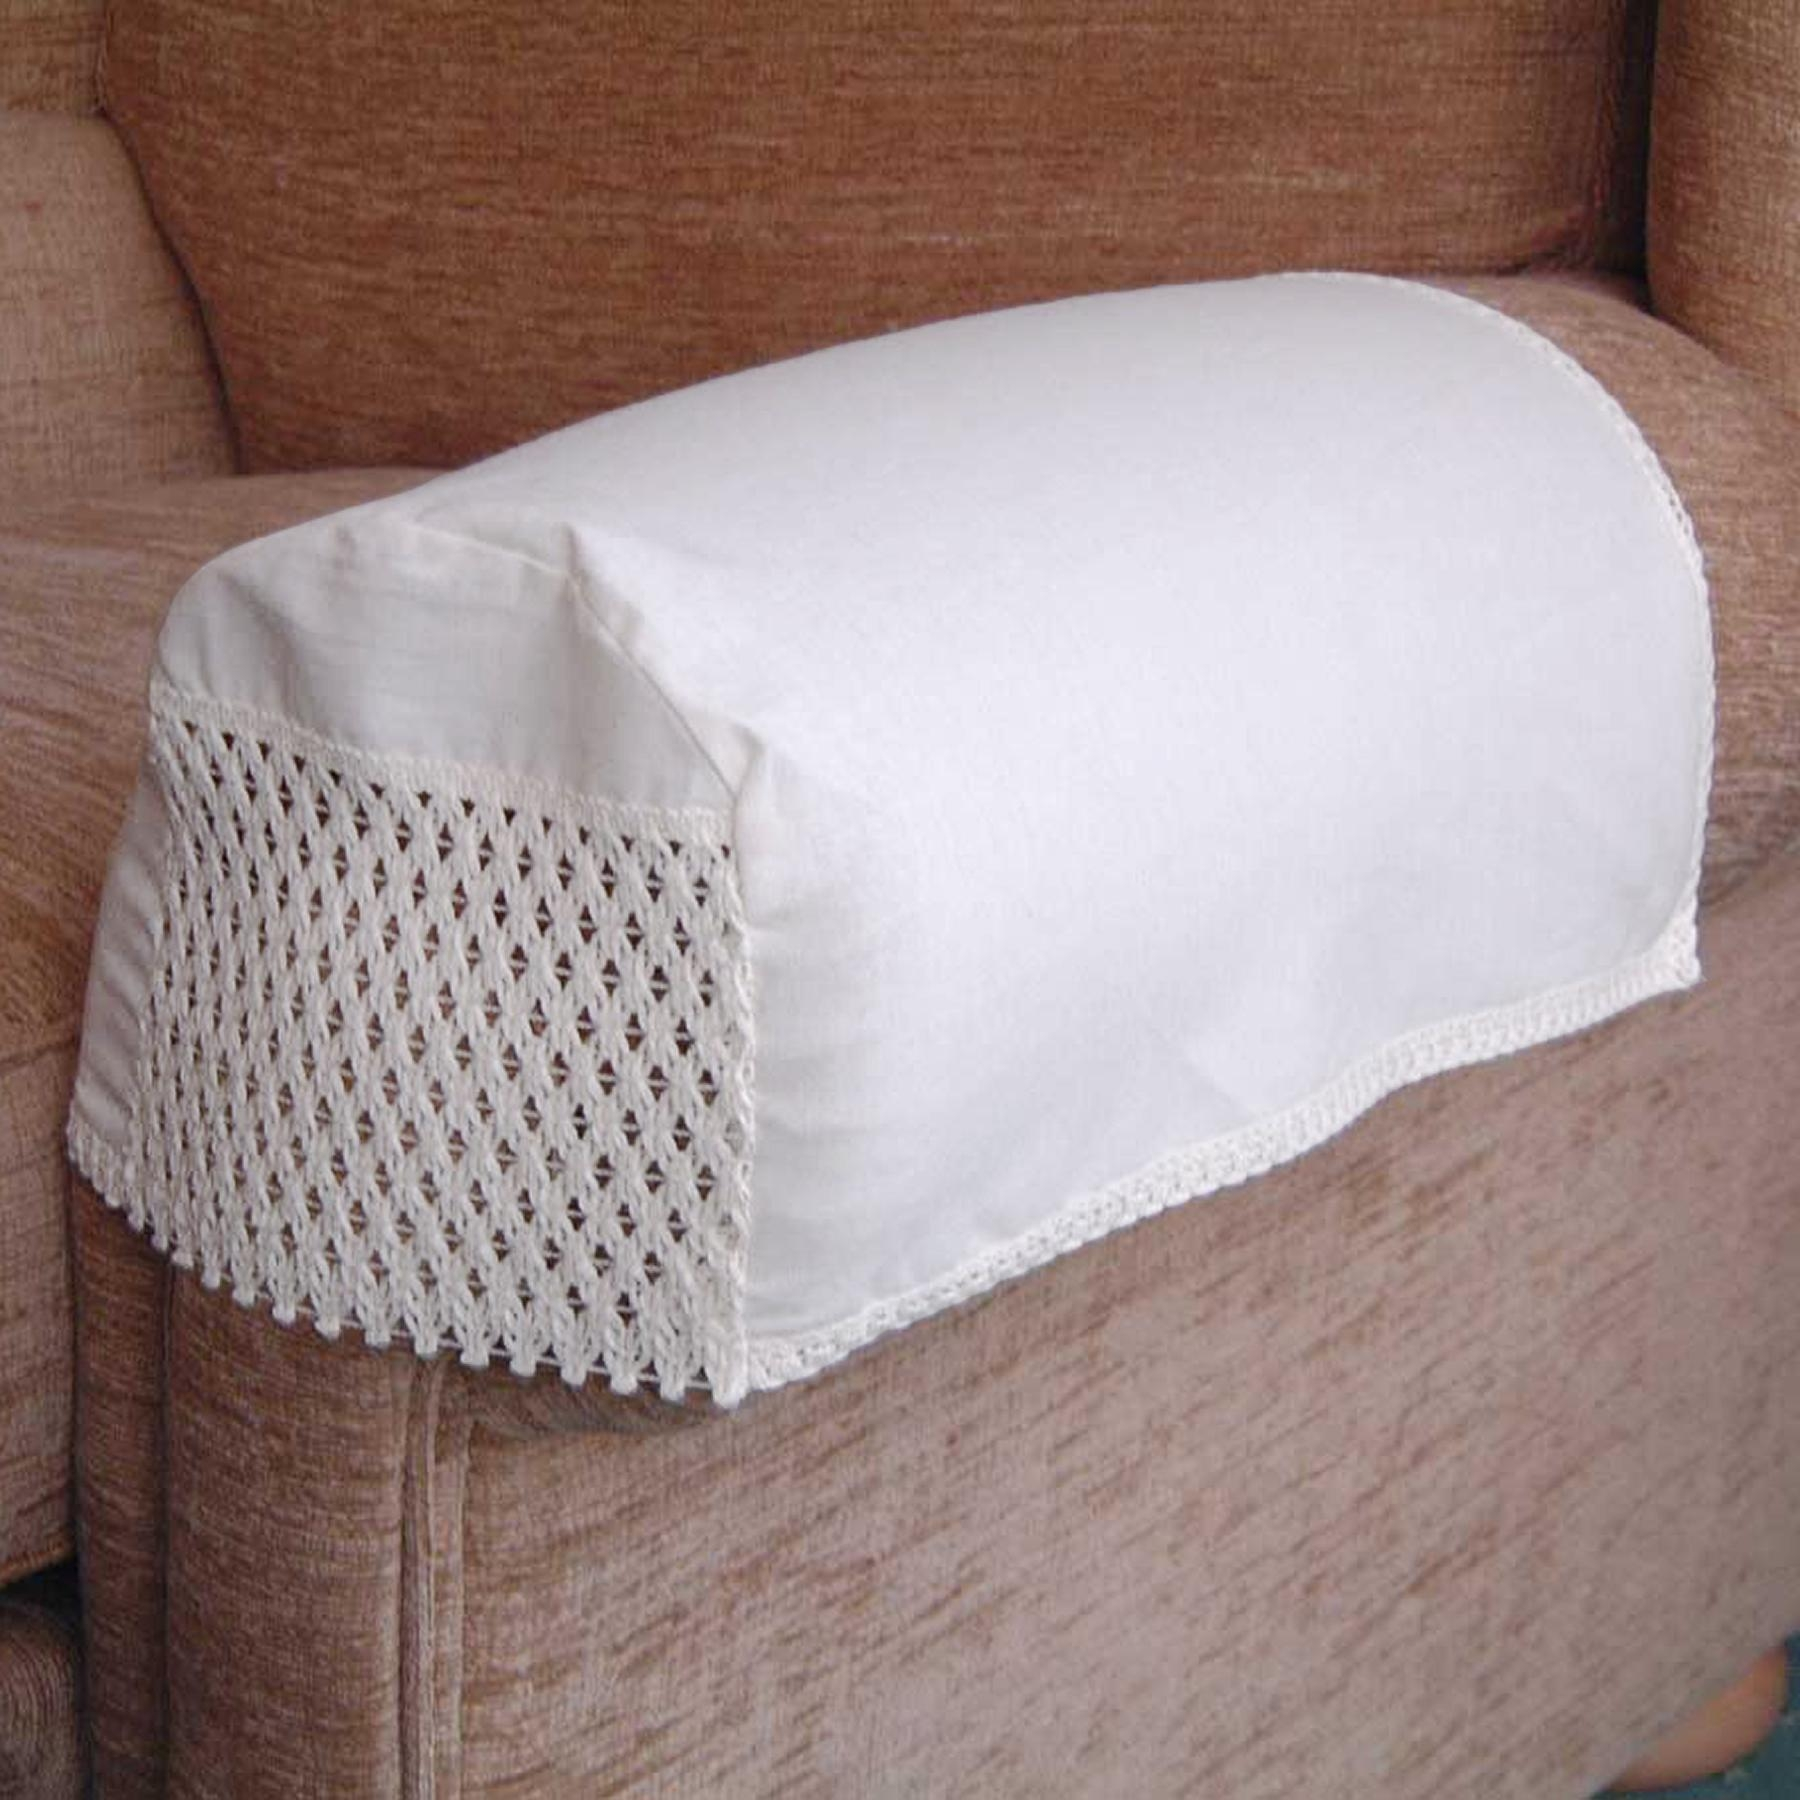 Choice Of Antimacassar Chair Backs And Arm Caps In Various Designs For Sofa Arm Caps (Image 8 of 20)